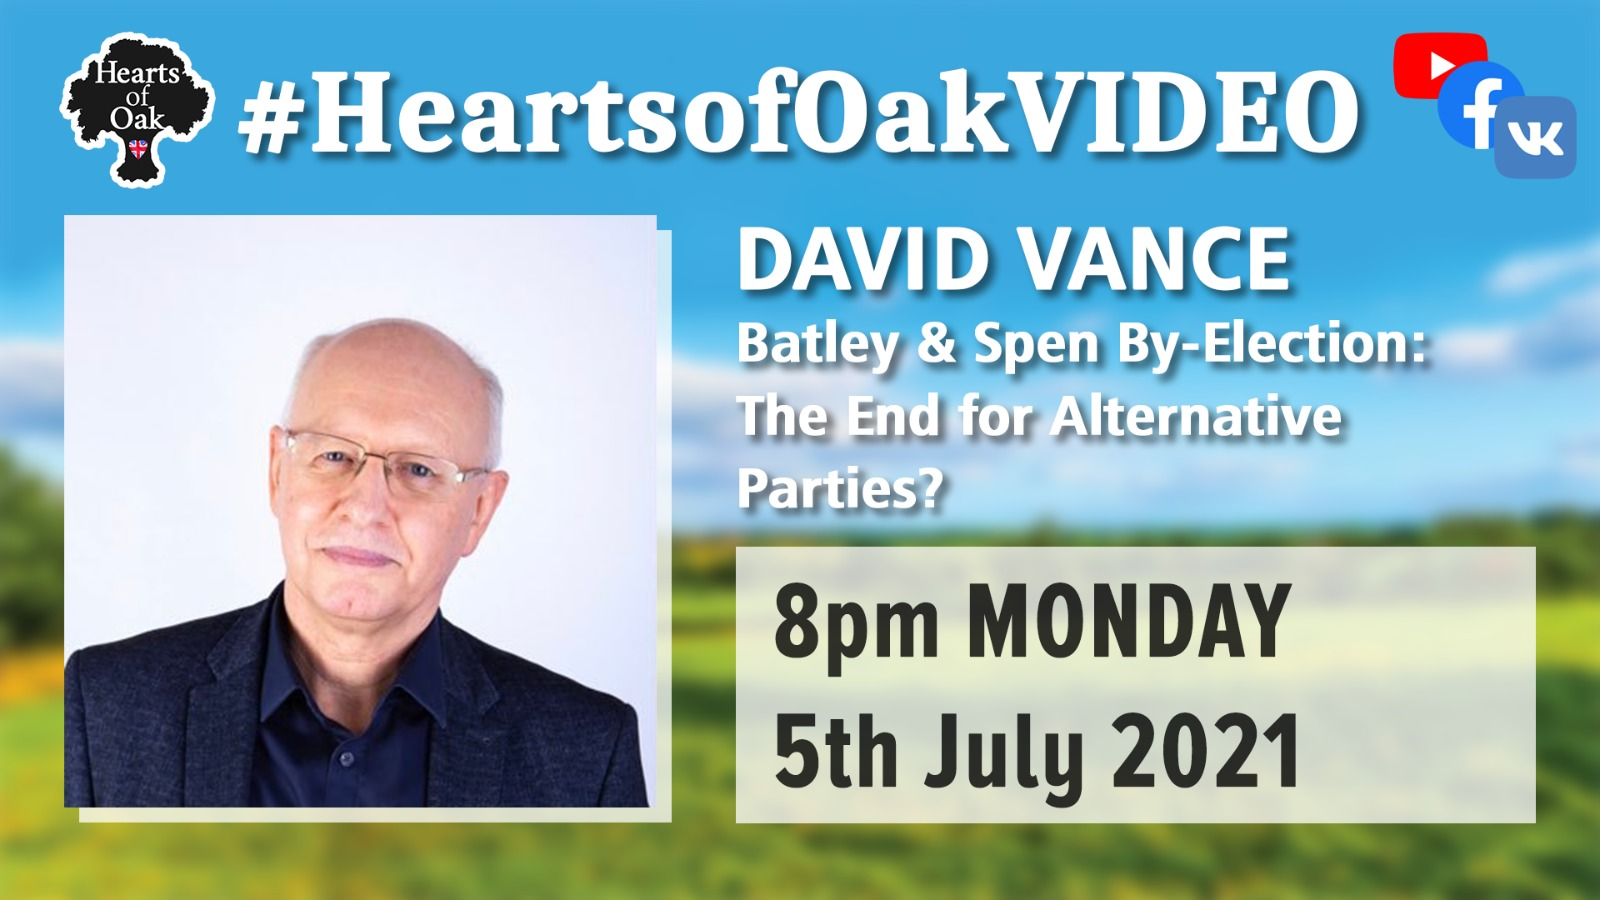 David Vance: Batley & Spen By-Election; The End for Alternative Parties?